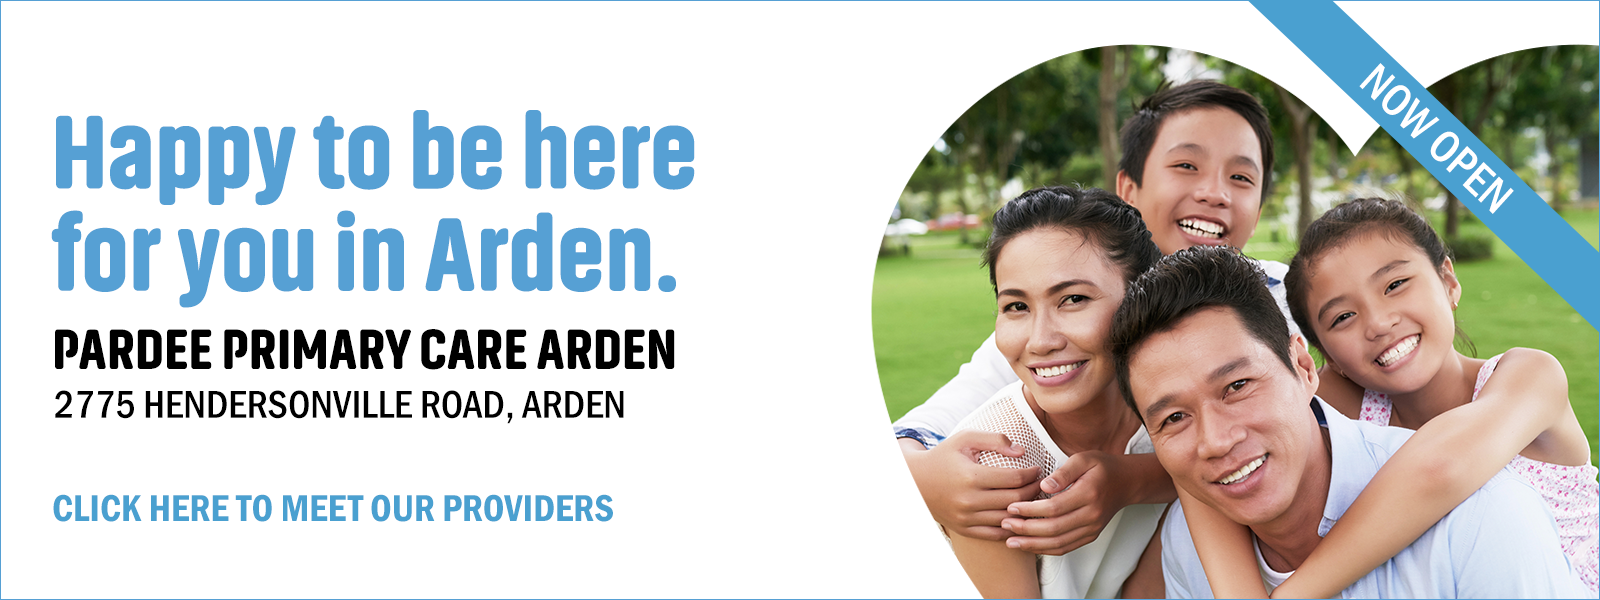 Happy to be here for you in Arden